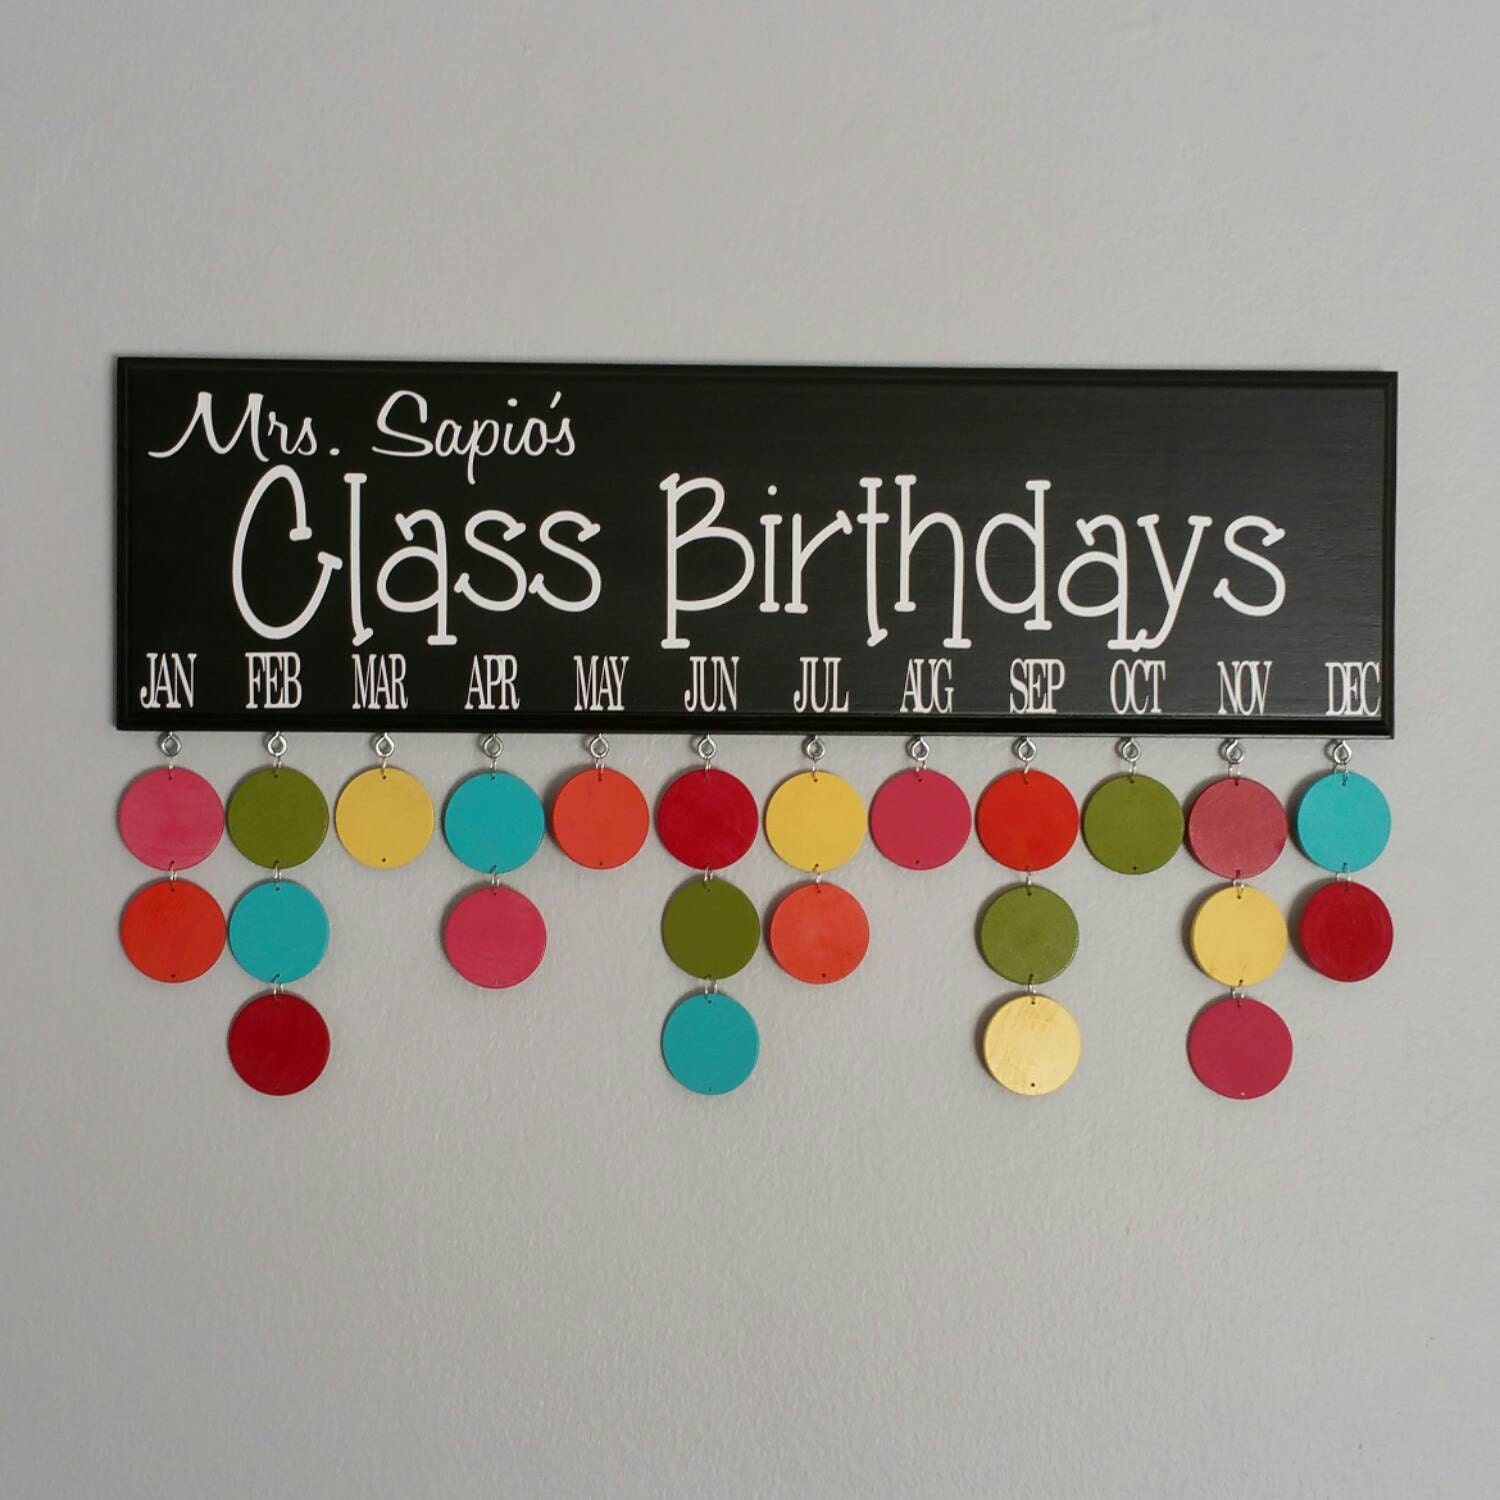 Classroom Birthday Ideas For A Teacher ~ Class birthdays calendar teacher classroom